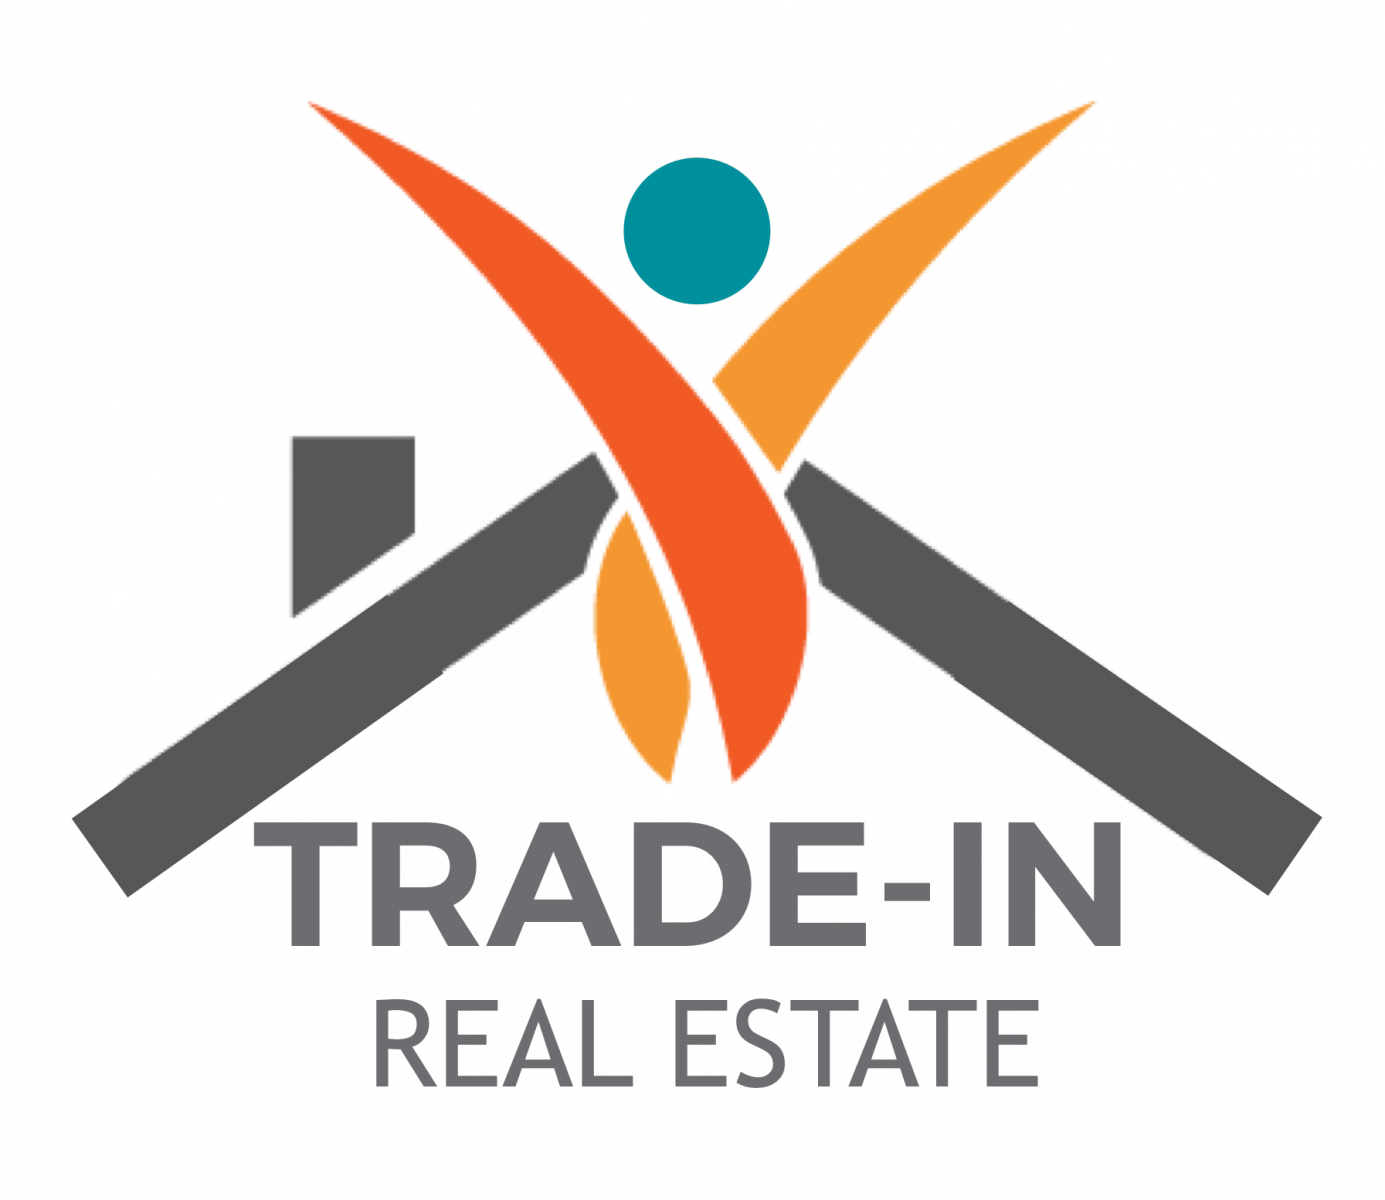 Trade-In Real Estate logo